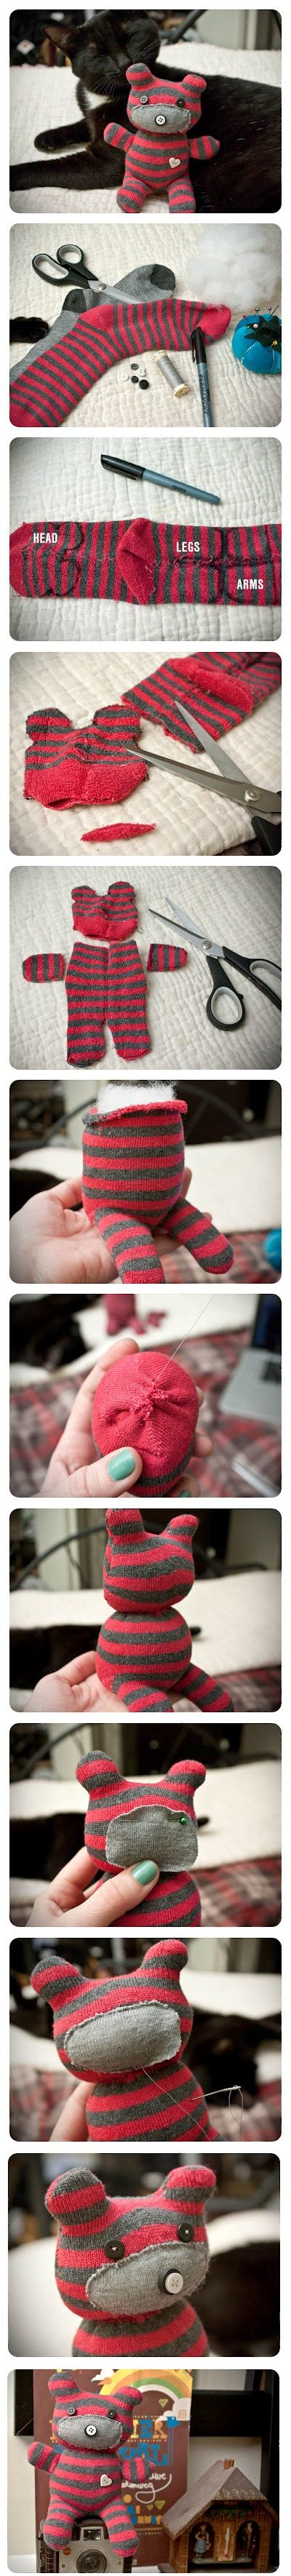 DIY Cute Little Teddy Bear <3 <3 <3